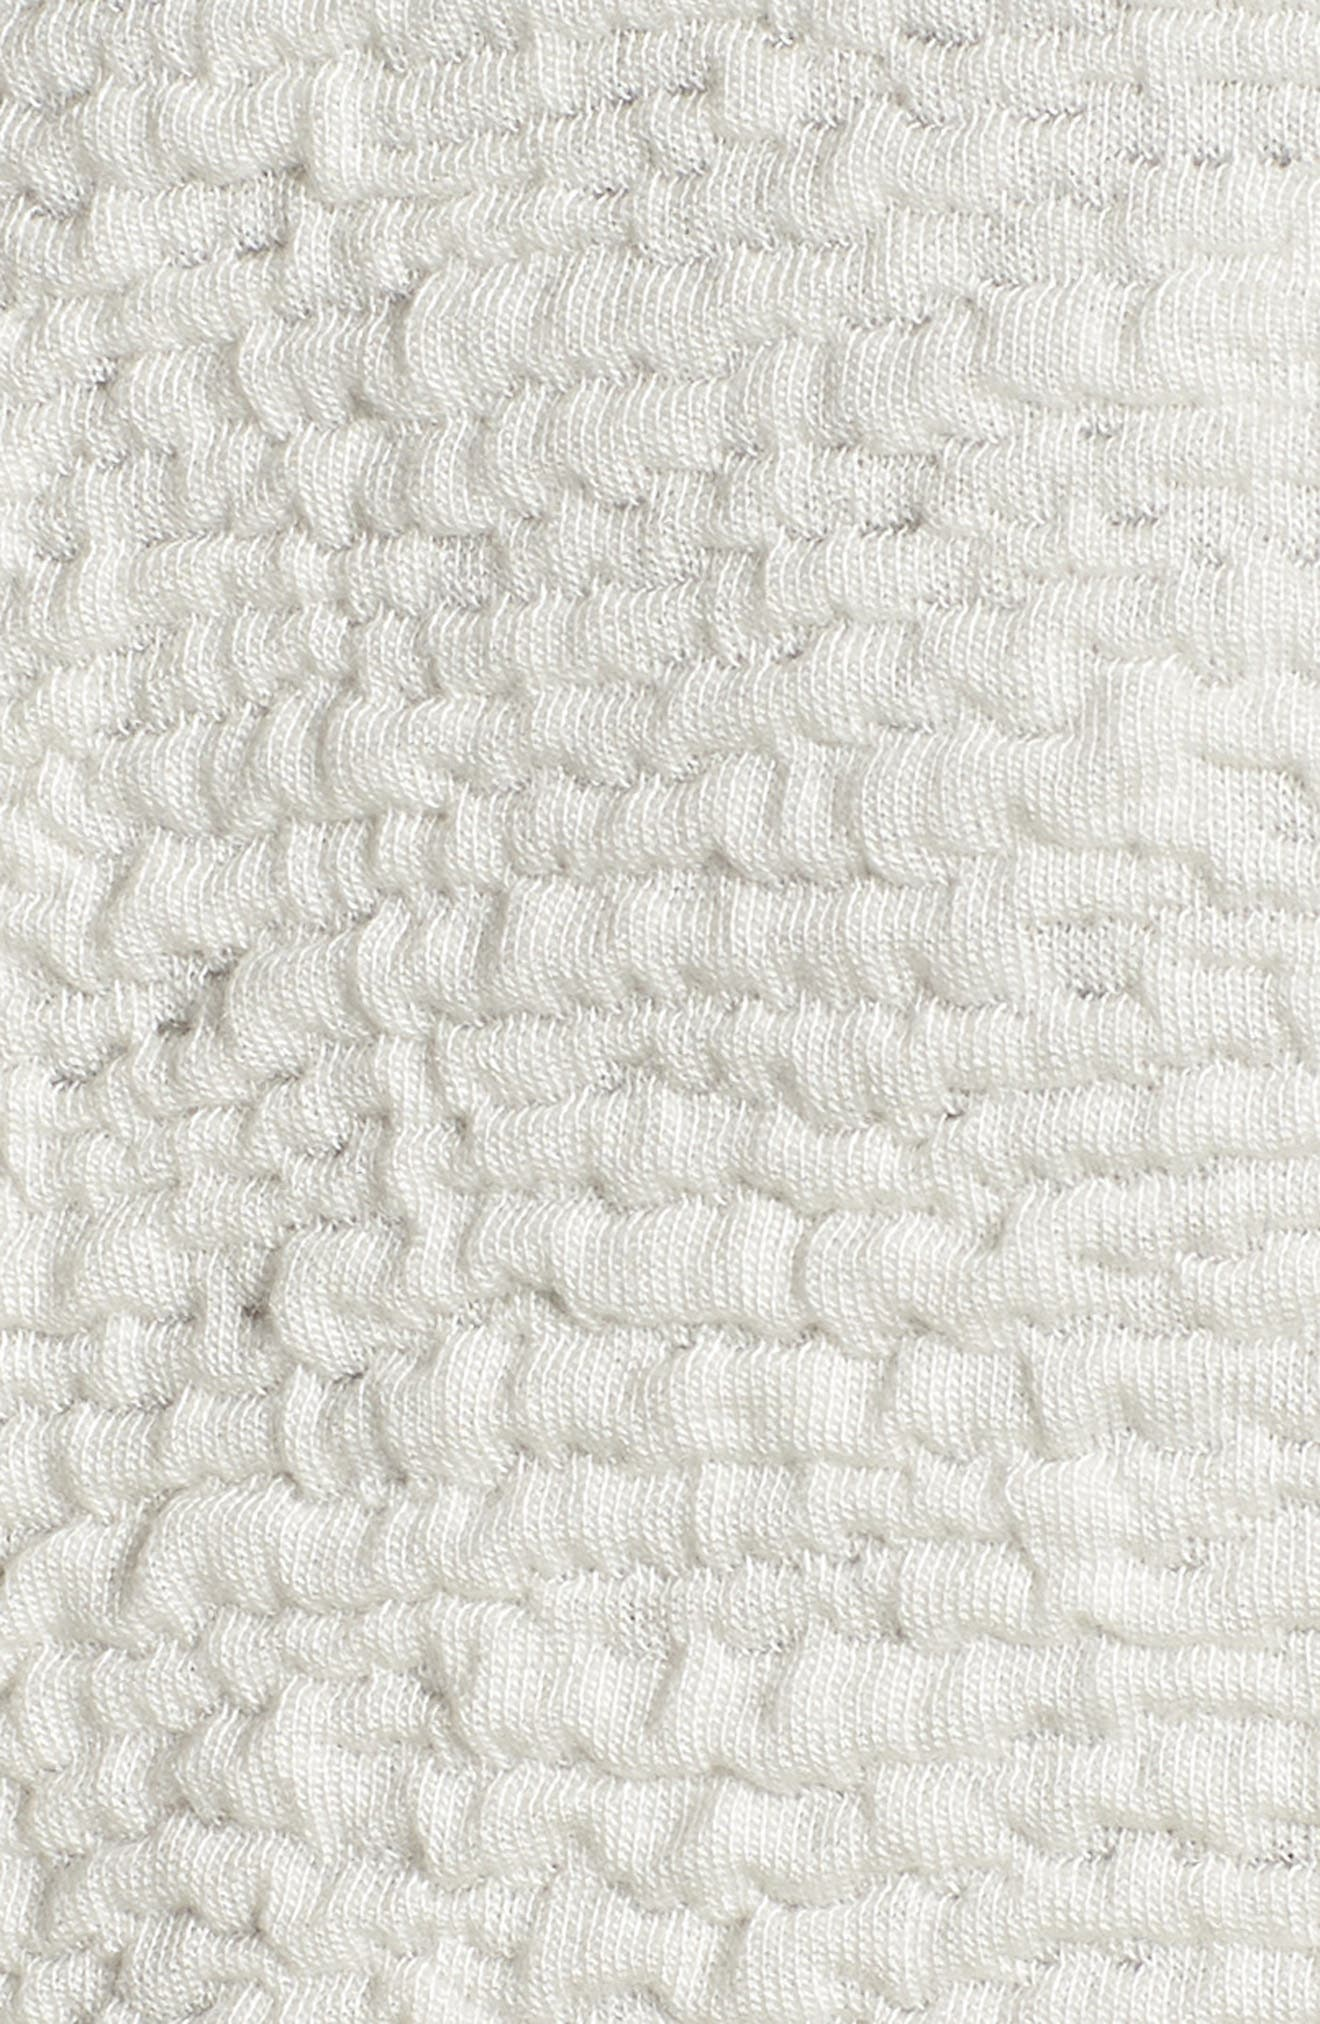 Textured Tencel<sup>®</sup> Lyocell Kimono Jacket,                             Alternate thumbnail 5, color,                             White